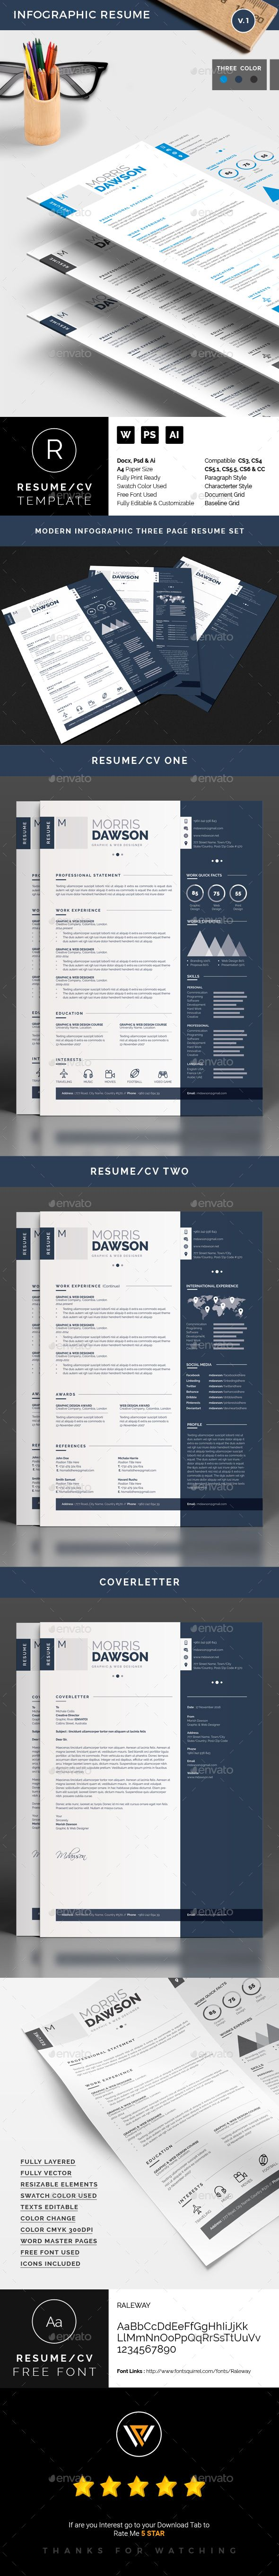 Infographic resume cv template psd ai docx pinteres infographic resume cv template psd ai docx more yelopaper Image collections